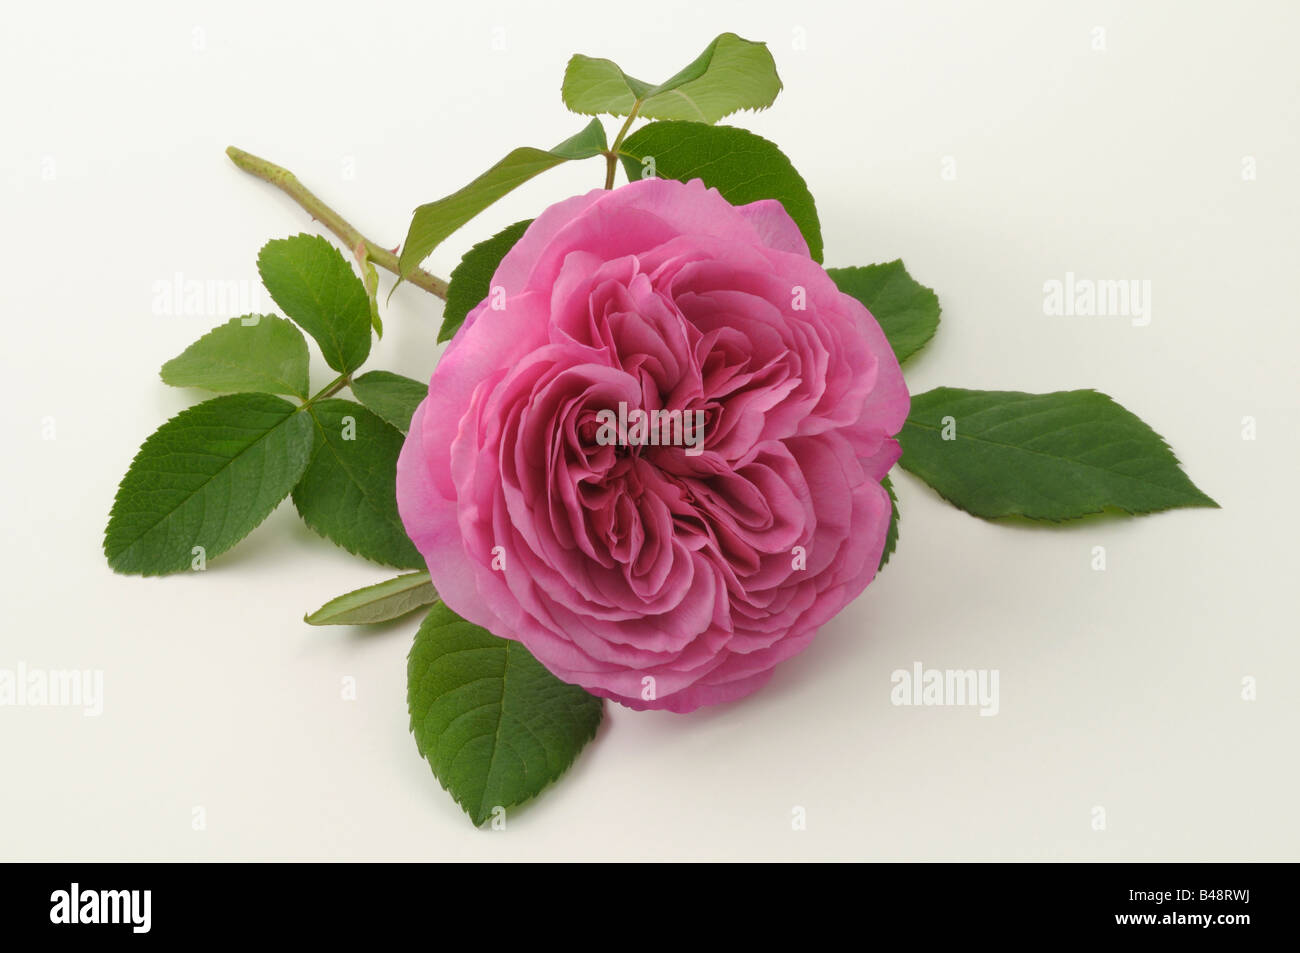 Damask Rose (Rosa x damascena), variety: Ispahan, flower, studio picture - Stock Image